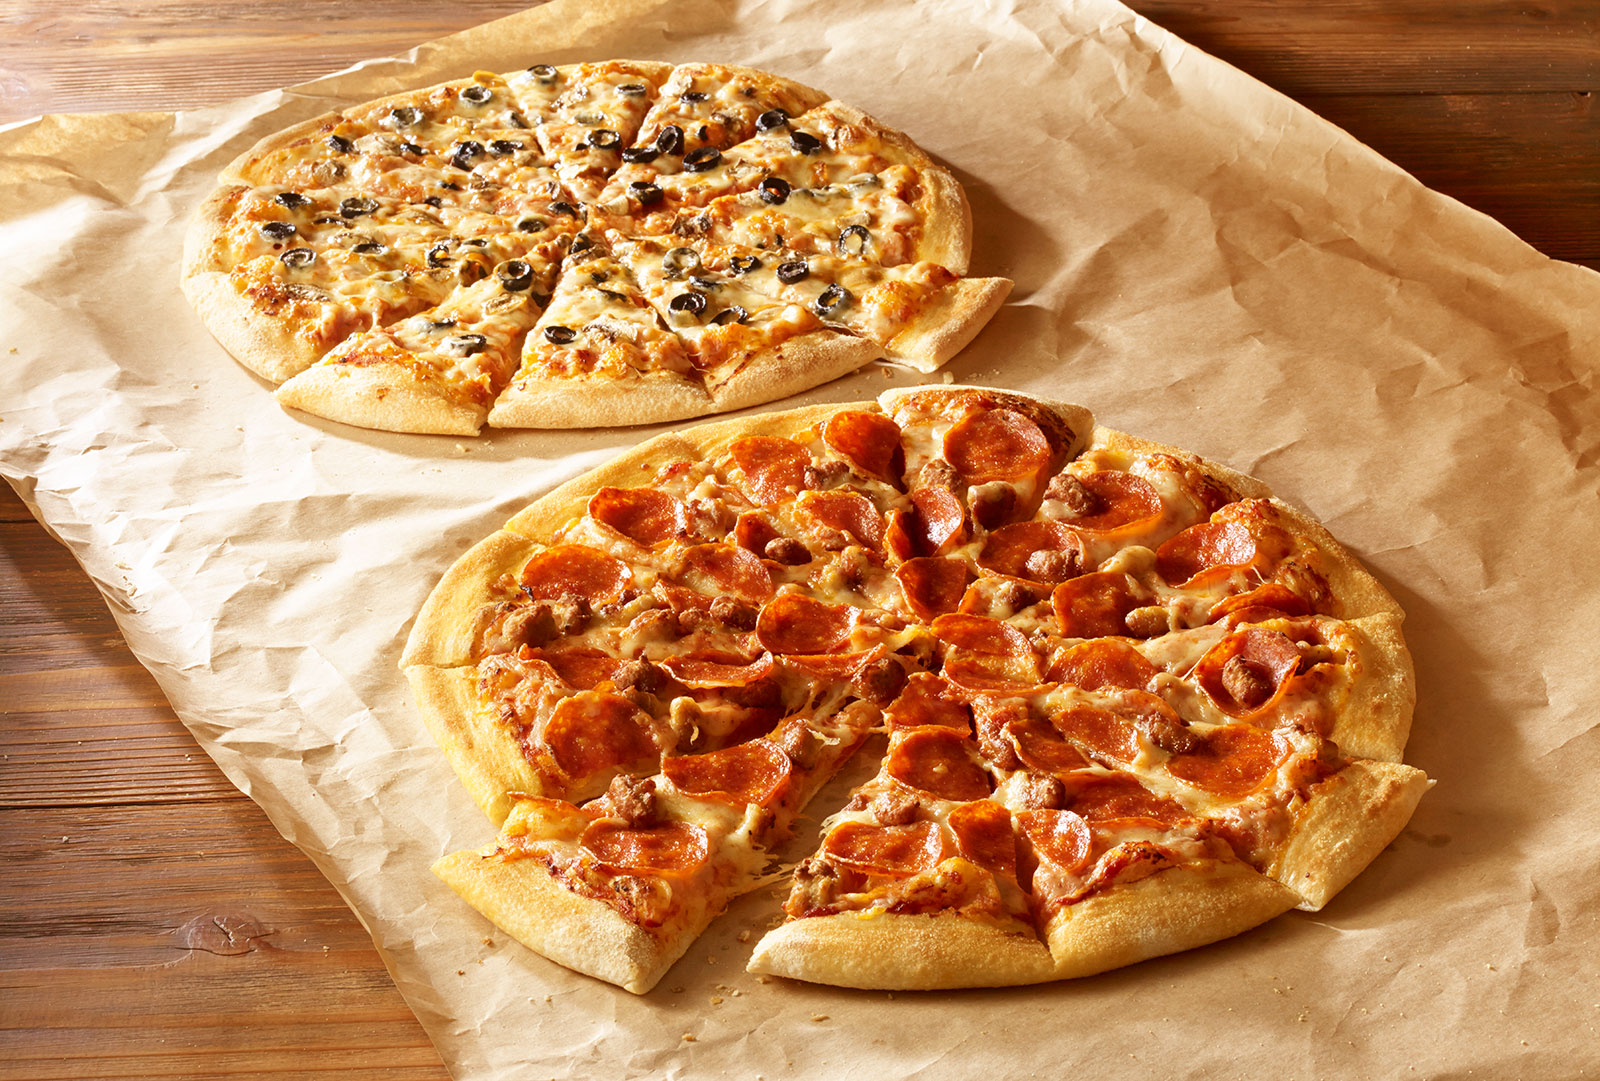 A taste of home from domino 39 s pizza for Domino pizza